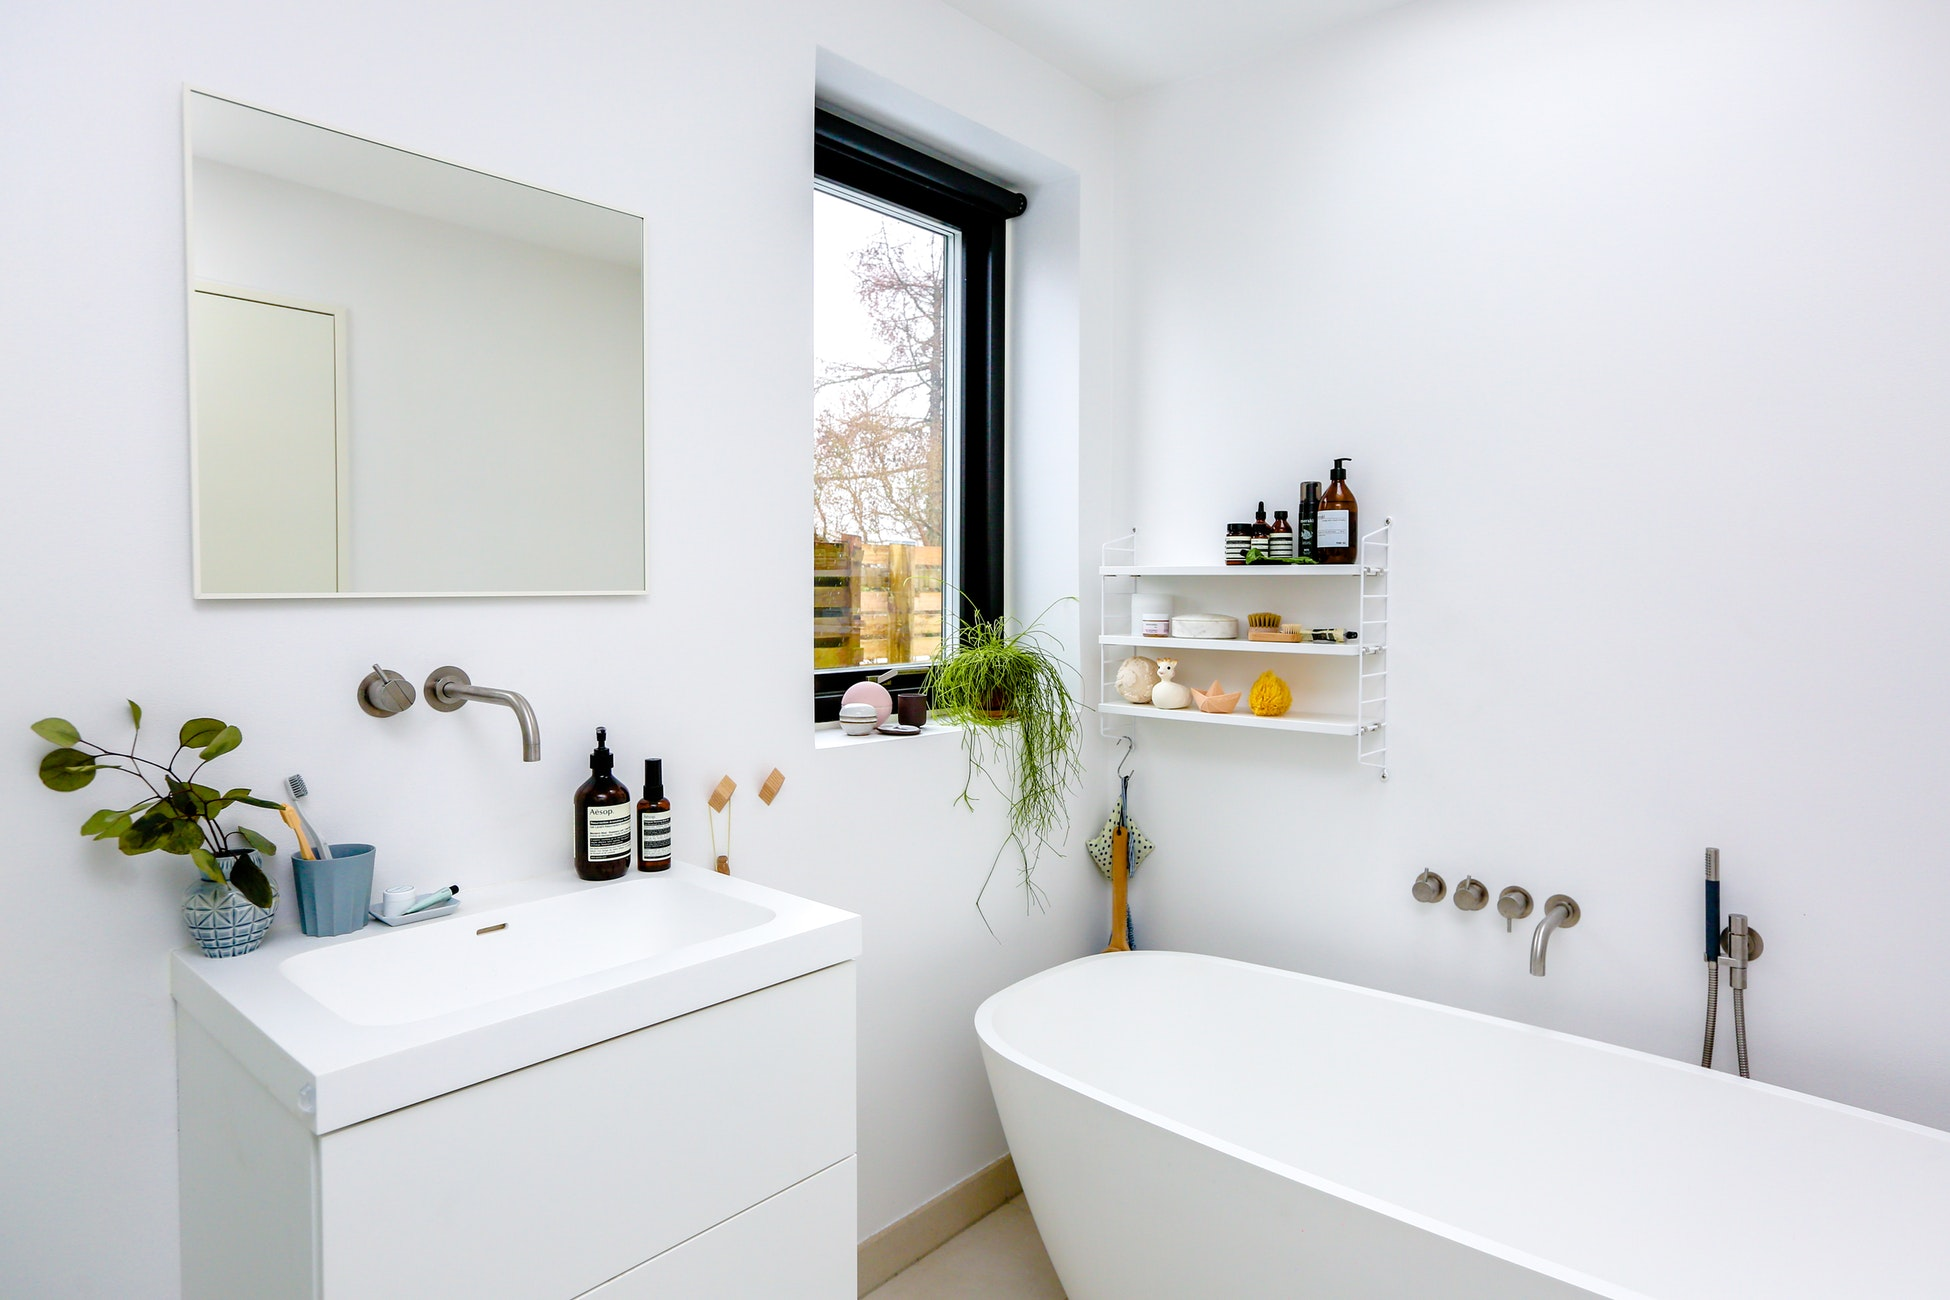 @projectfairytale: Tips for Painting Your Bathroom